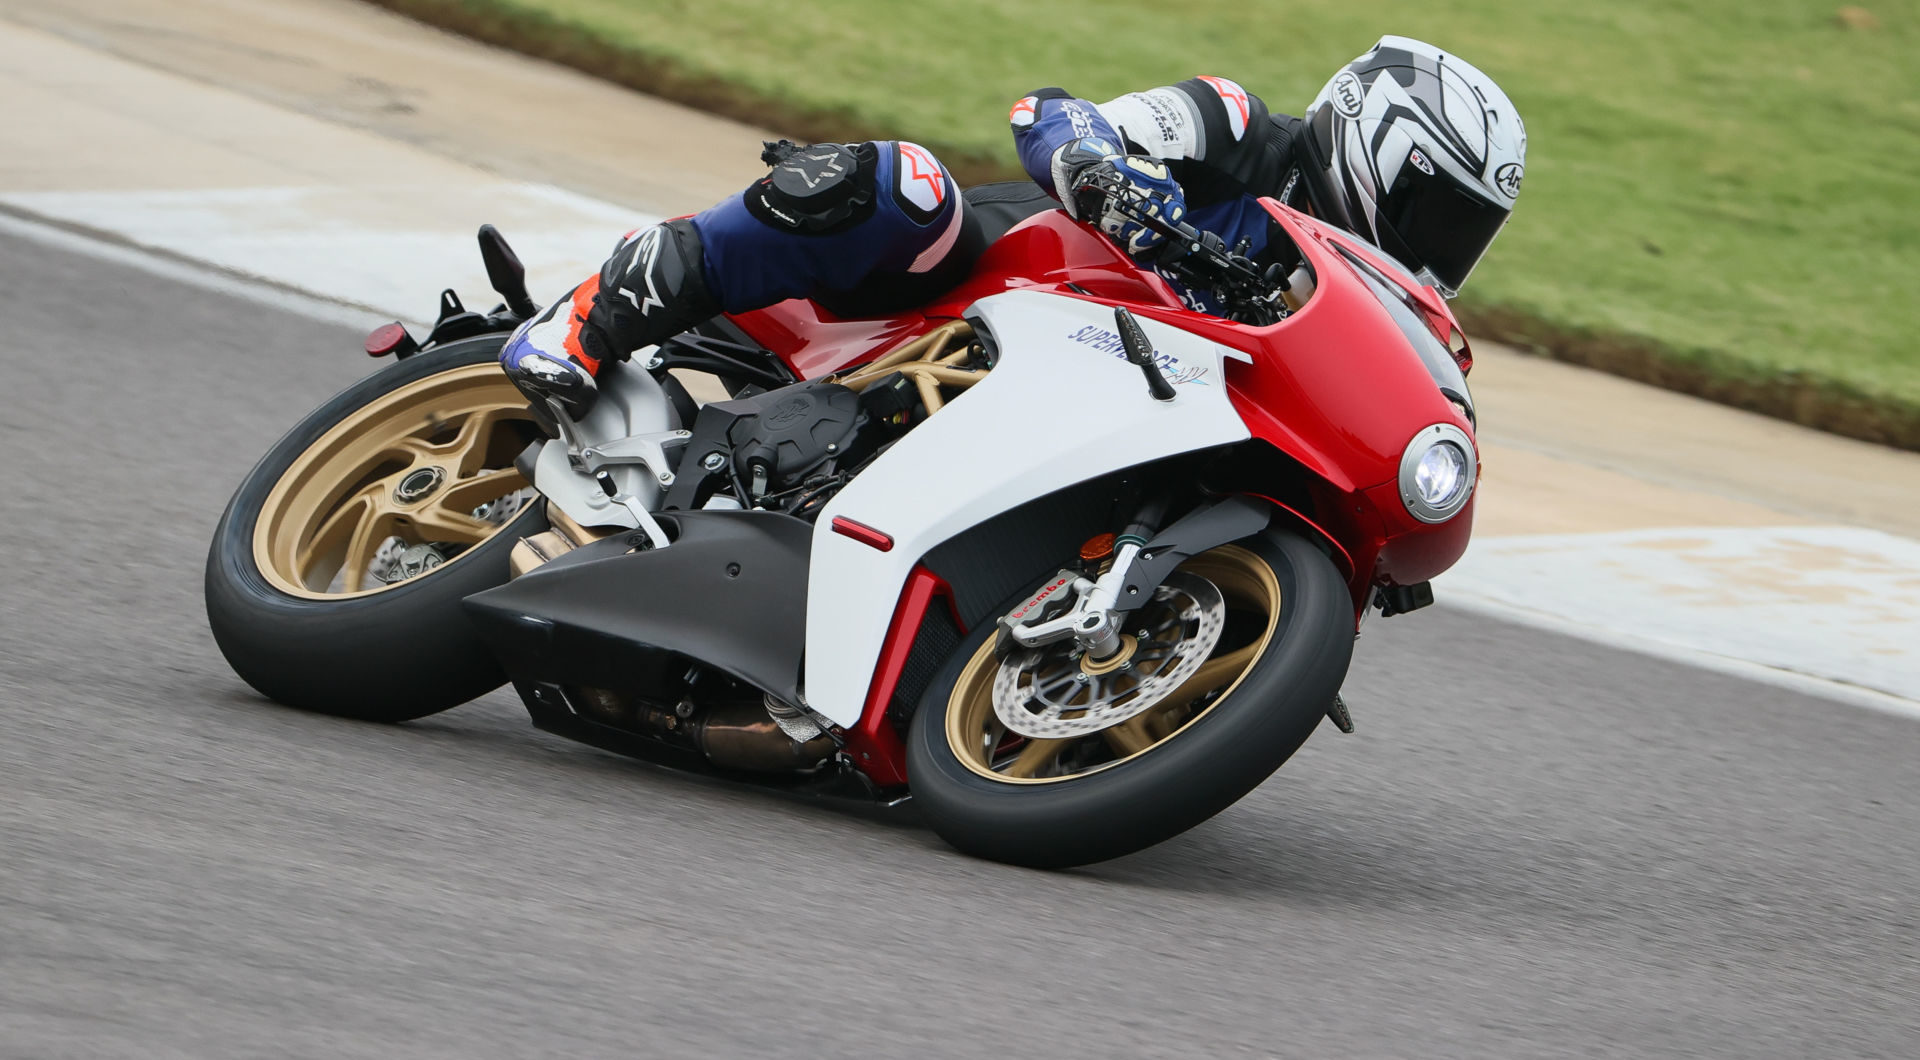 Roadracing World Racing Editor Chris Ulrich test riding a 2021 MV Agusta Superveloce 800 at Barber Motorsports Park. Photo by Brian J. Nelson.